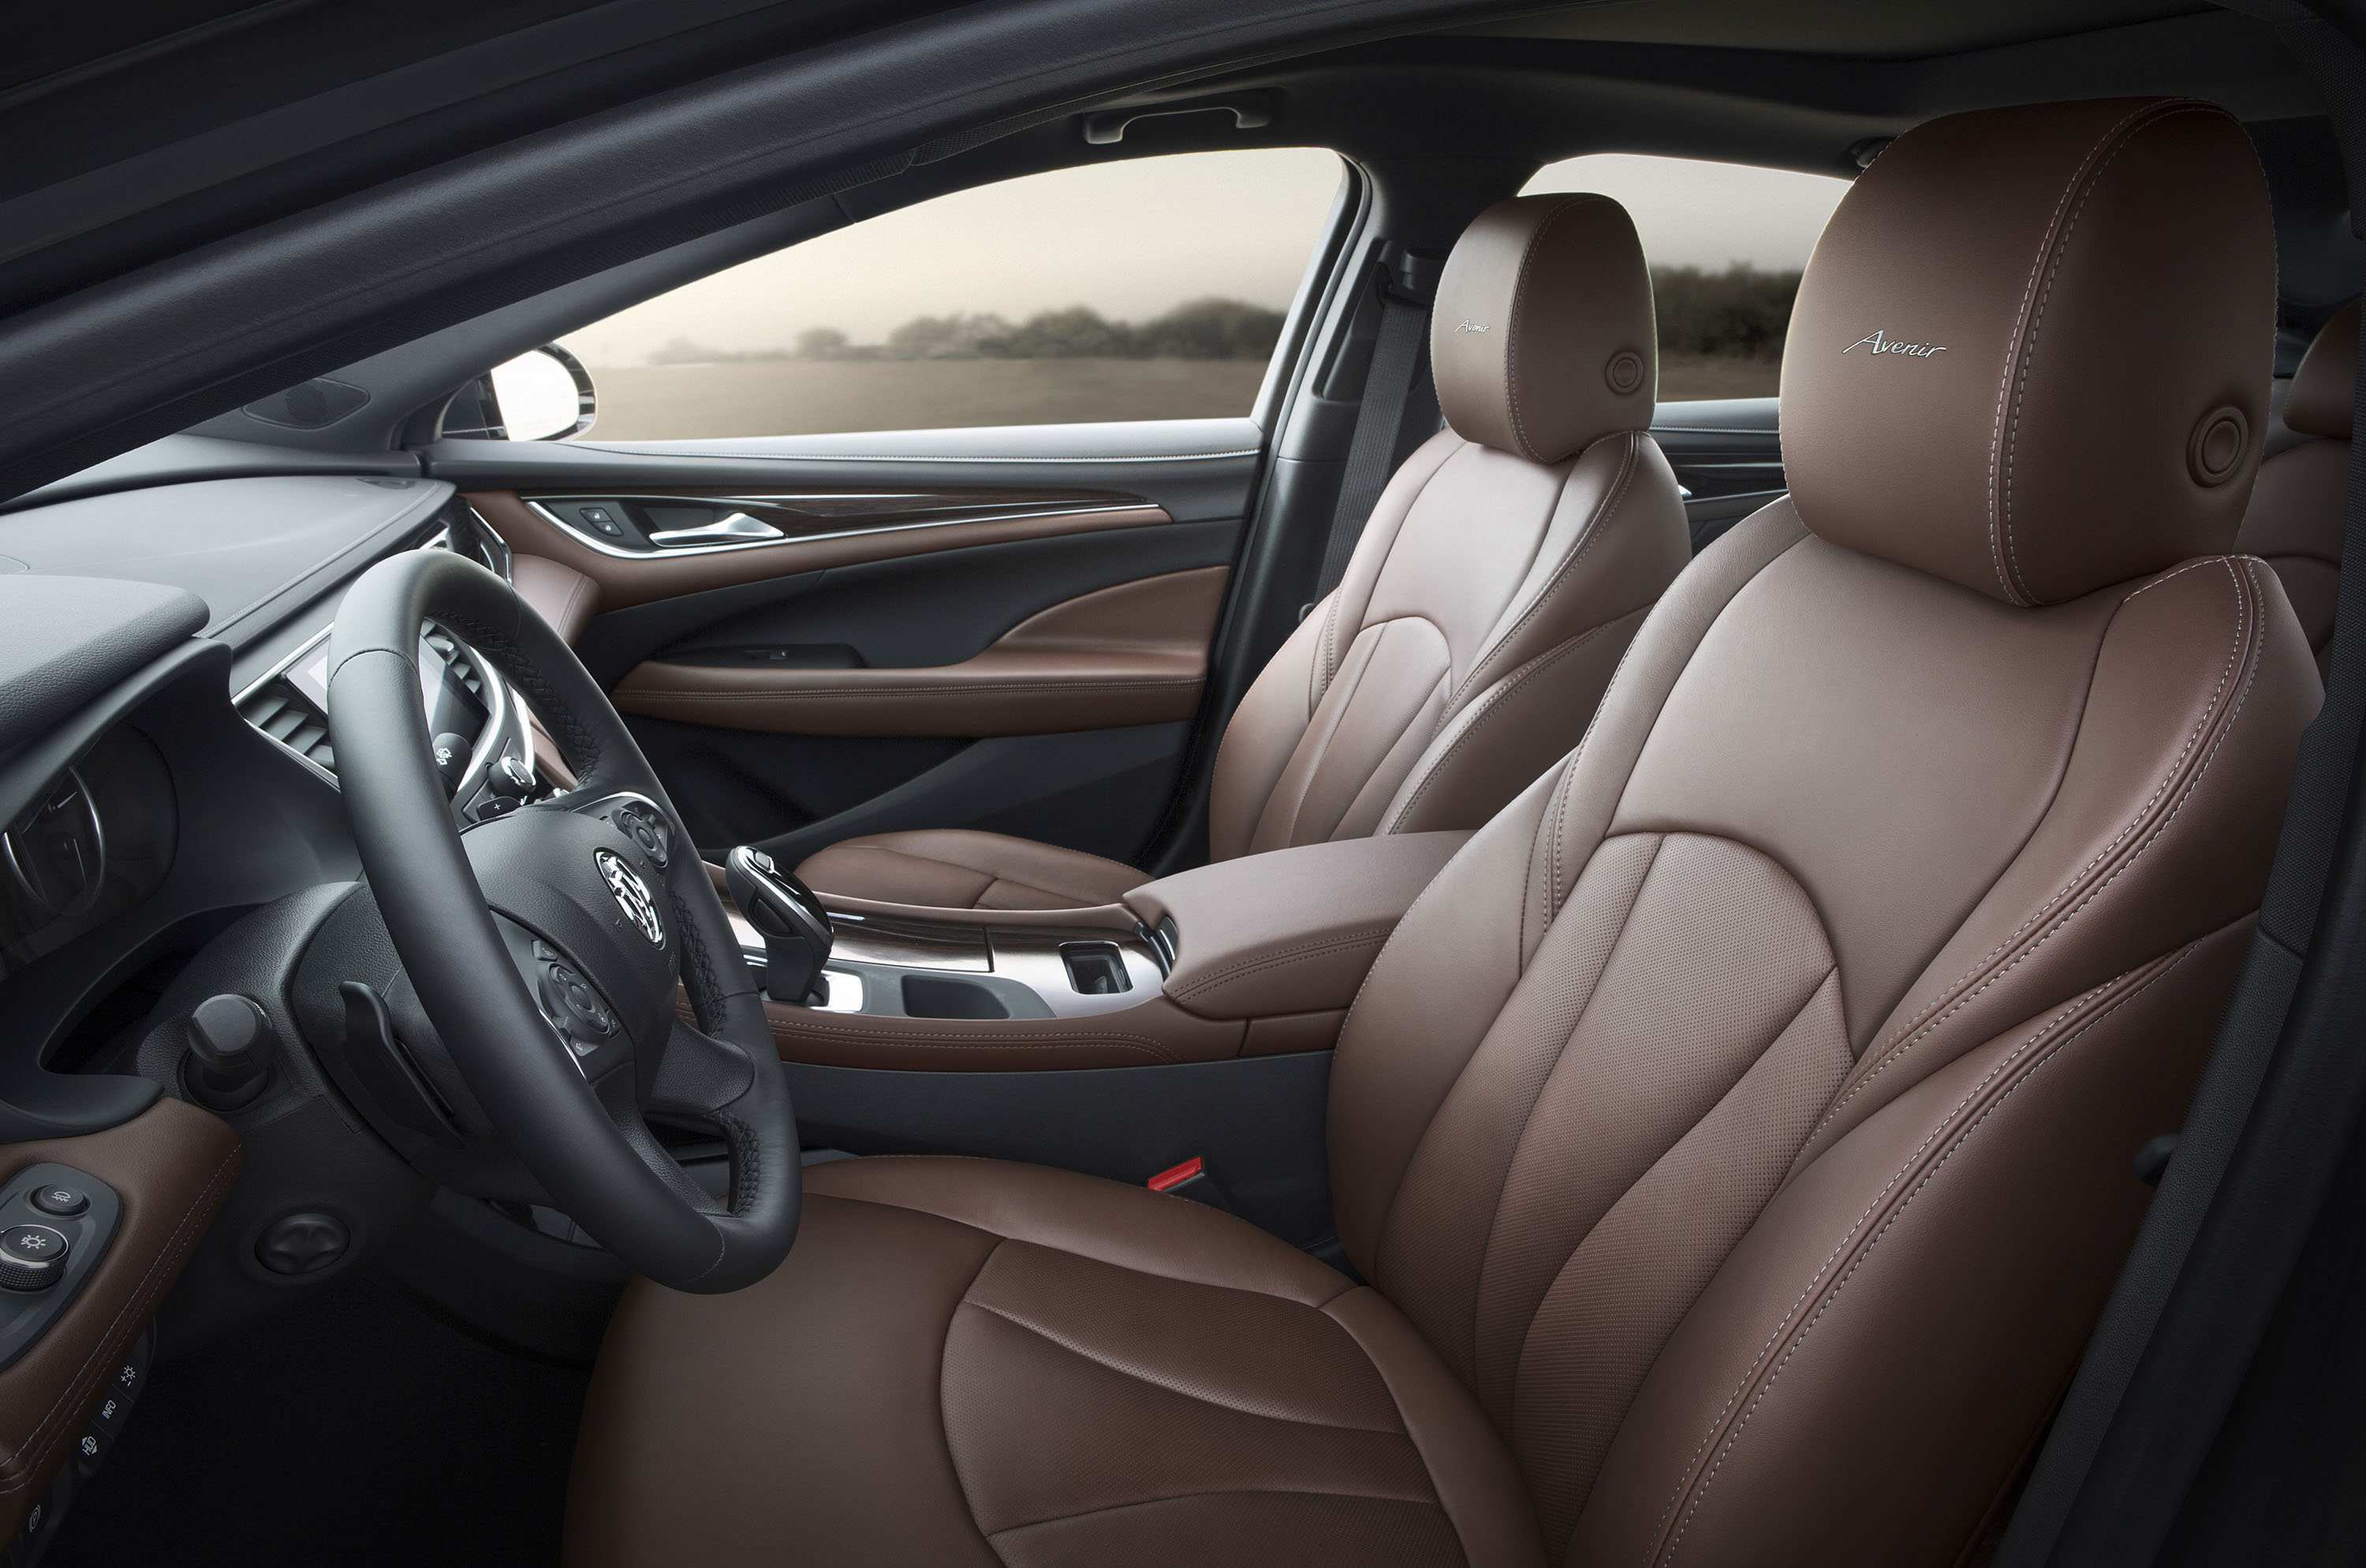 44 Gallery of New Buick Lacrosse 2019 Reviews Concept Redesign And Review Research New by New Buick Lacrosse 2019 Reviews Concept Redesign And Review